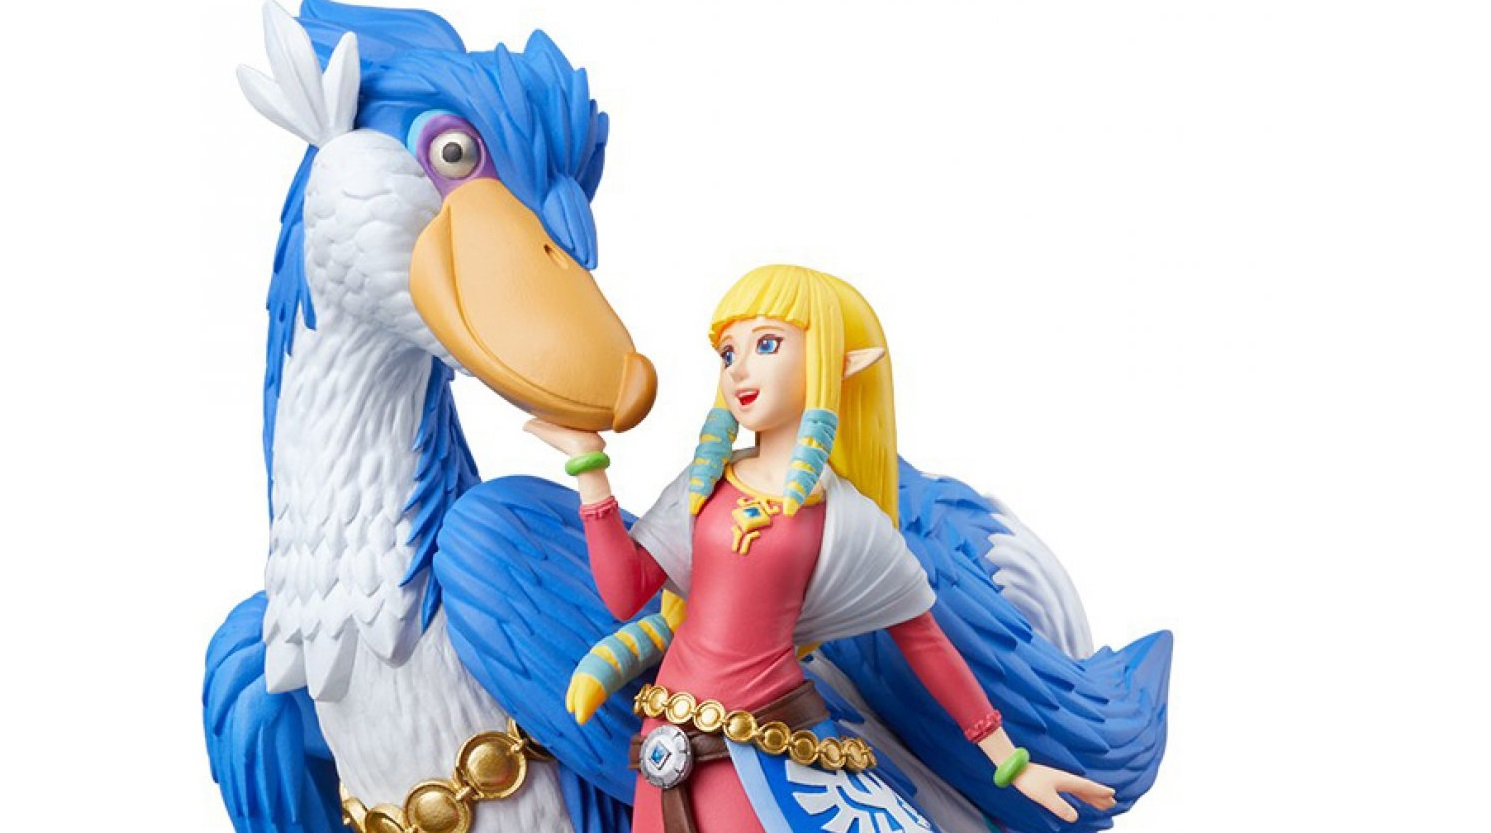 The new Loftwing figure is the only amiibo that can be used in Zelda: Skyword Sword HD, and it's $25 and has sold out at several stores already screenshot